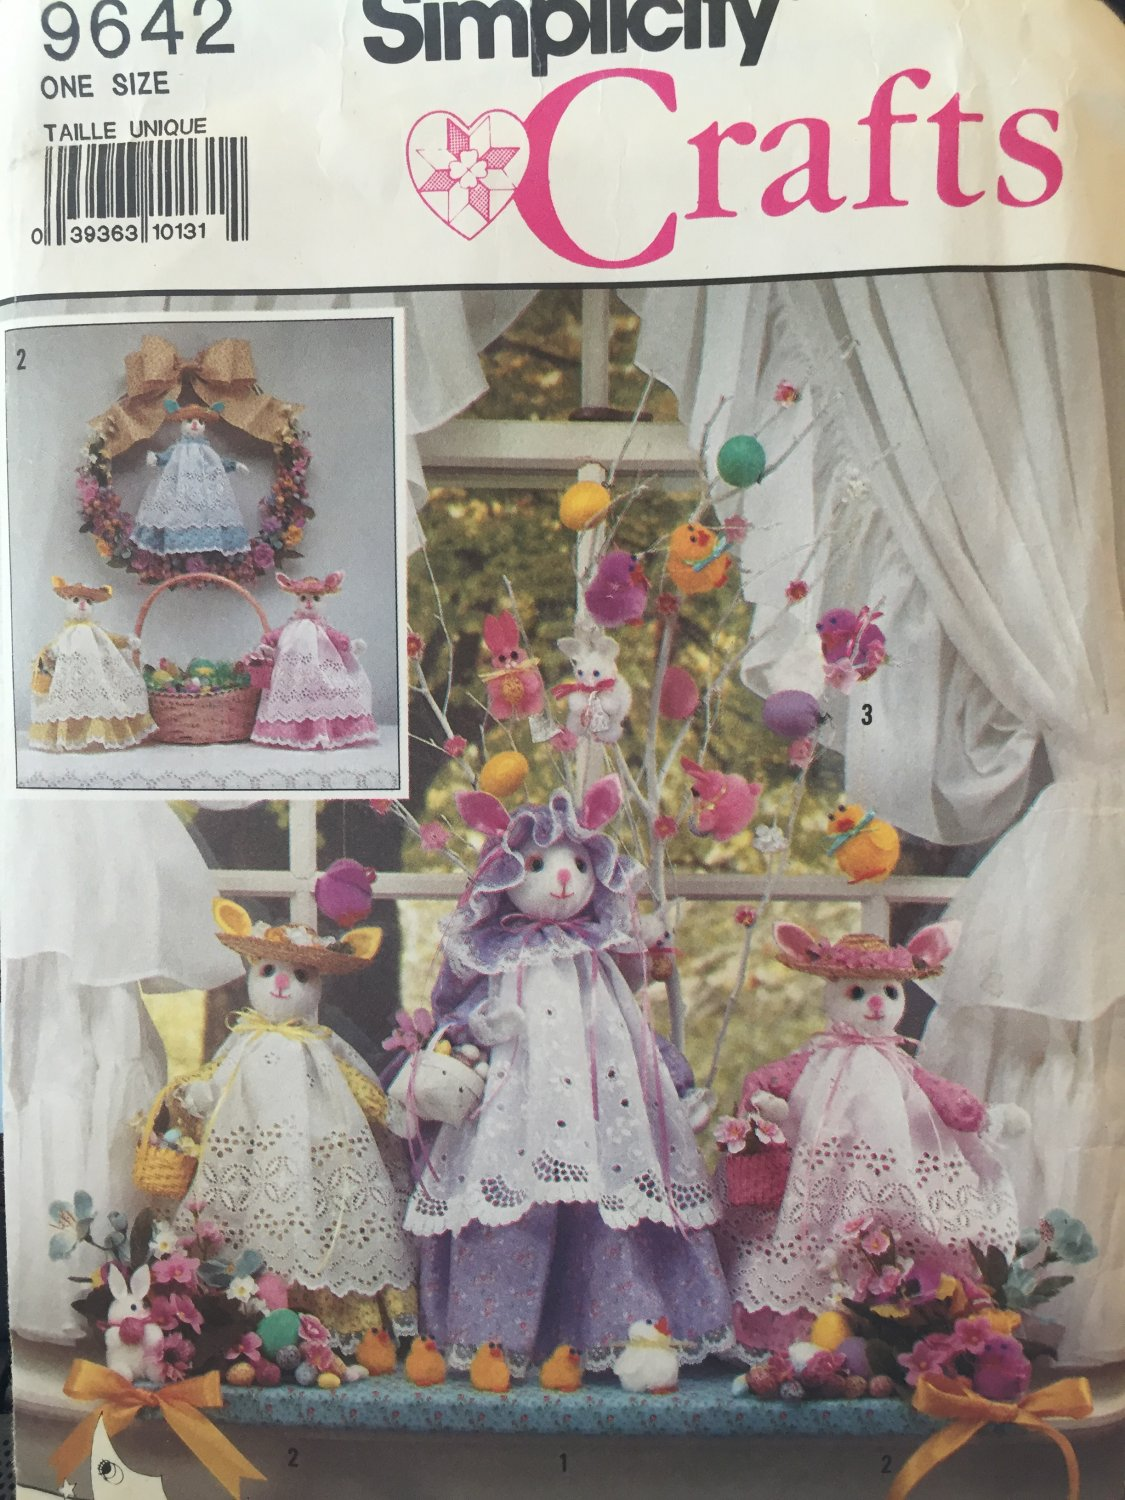 Simplicity Crafts Pattern 9642 Rabbits Bunnies & Clothes & Pom-Pom Ornaments